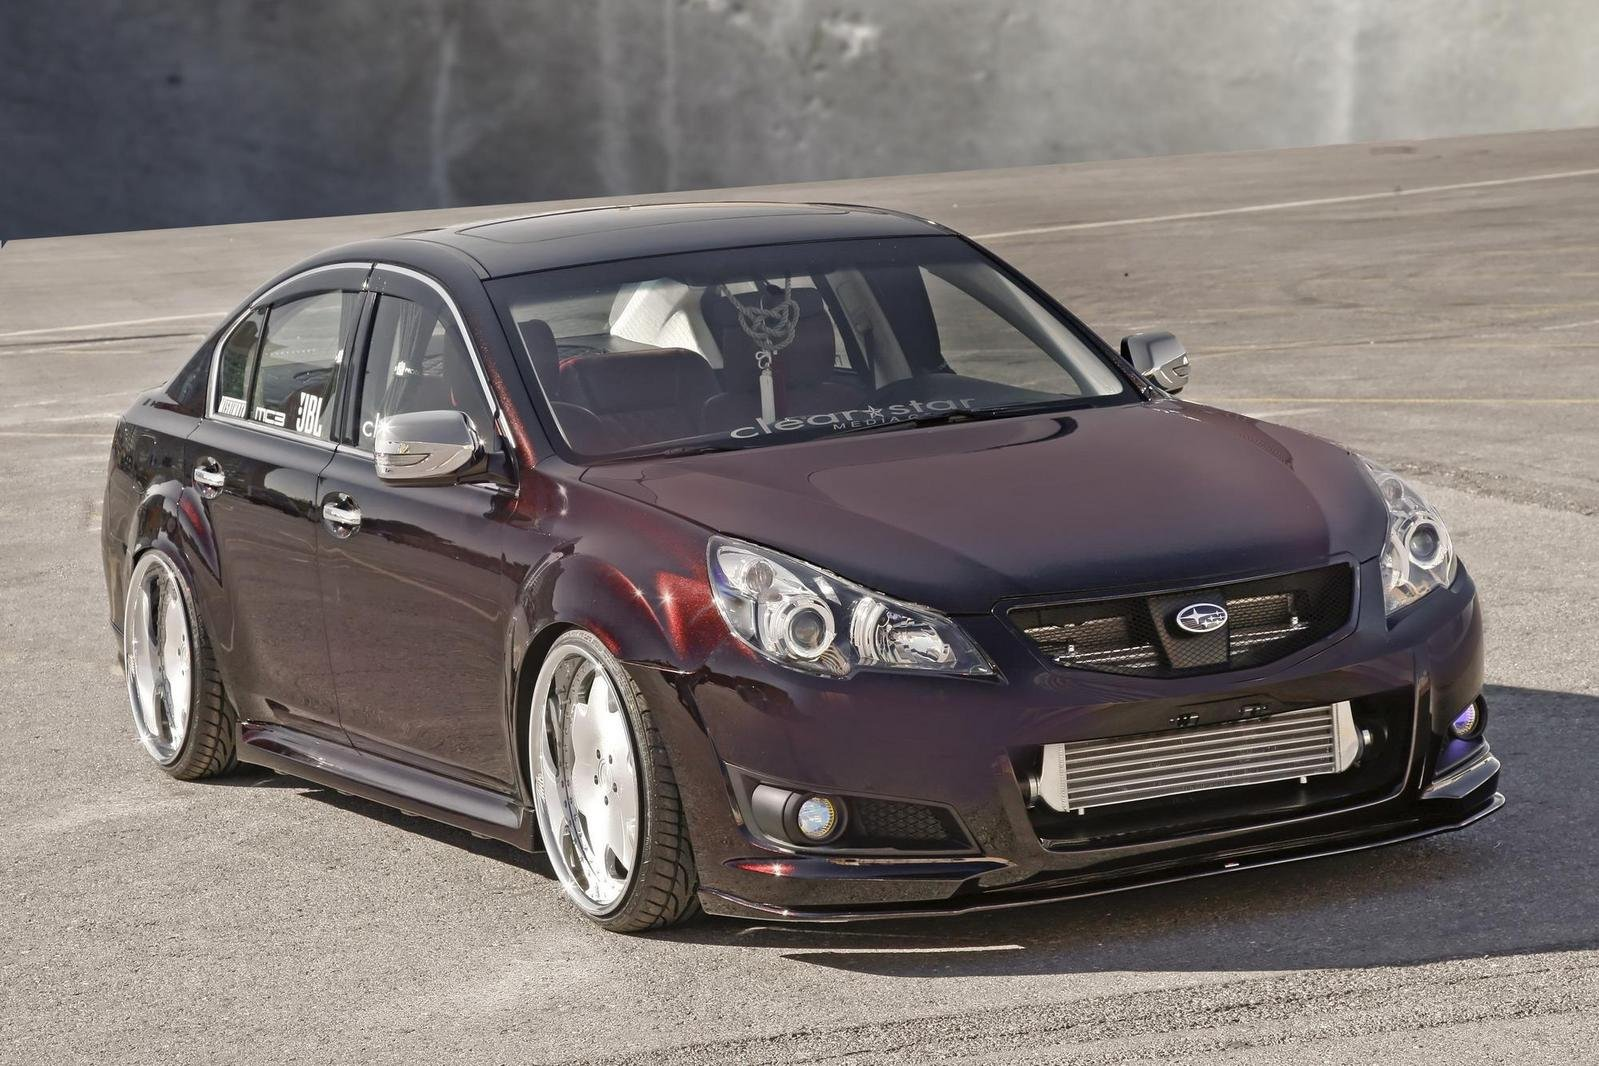 subaru legacy 2 5gt  1 1600x0w Anime Characters With Masks